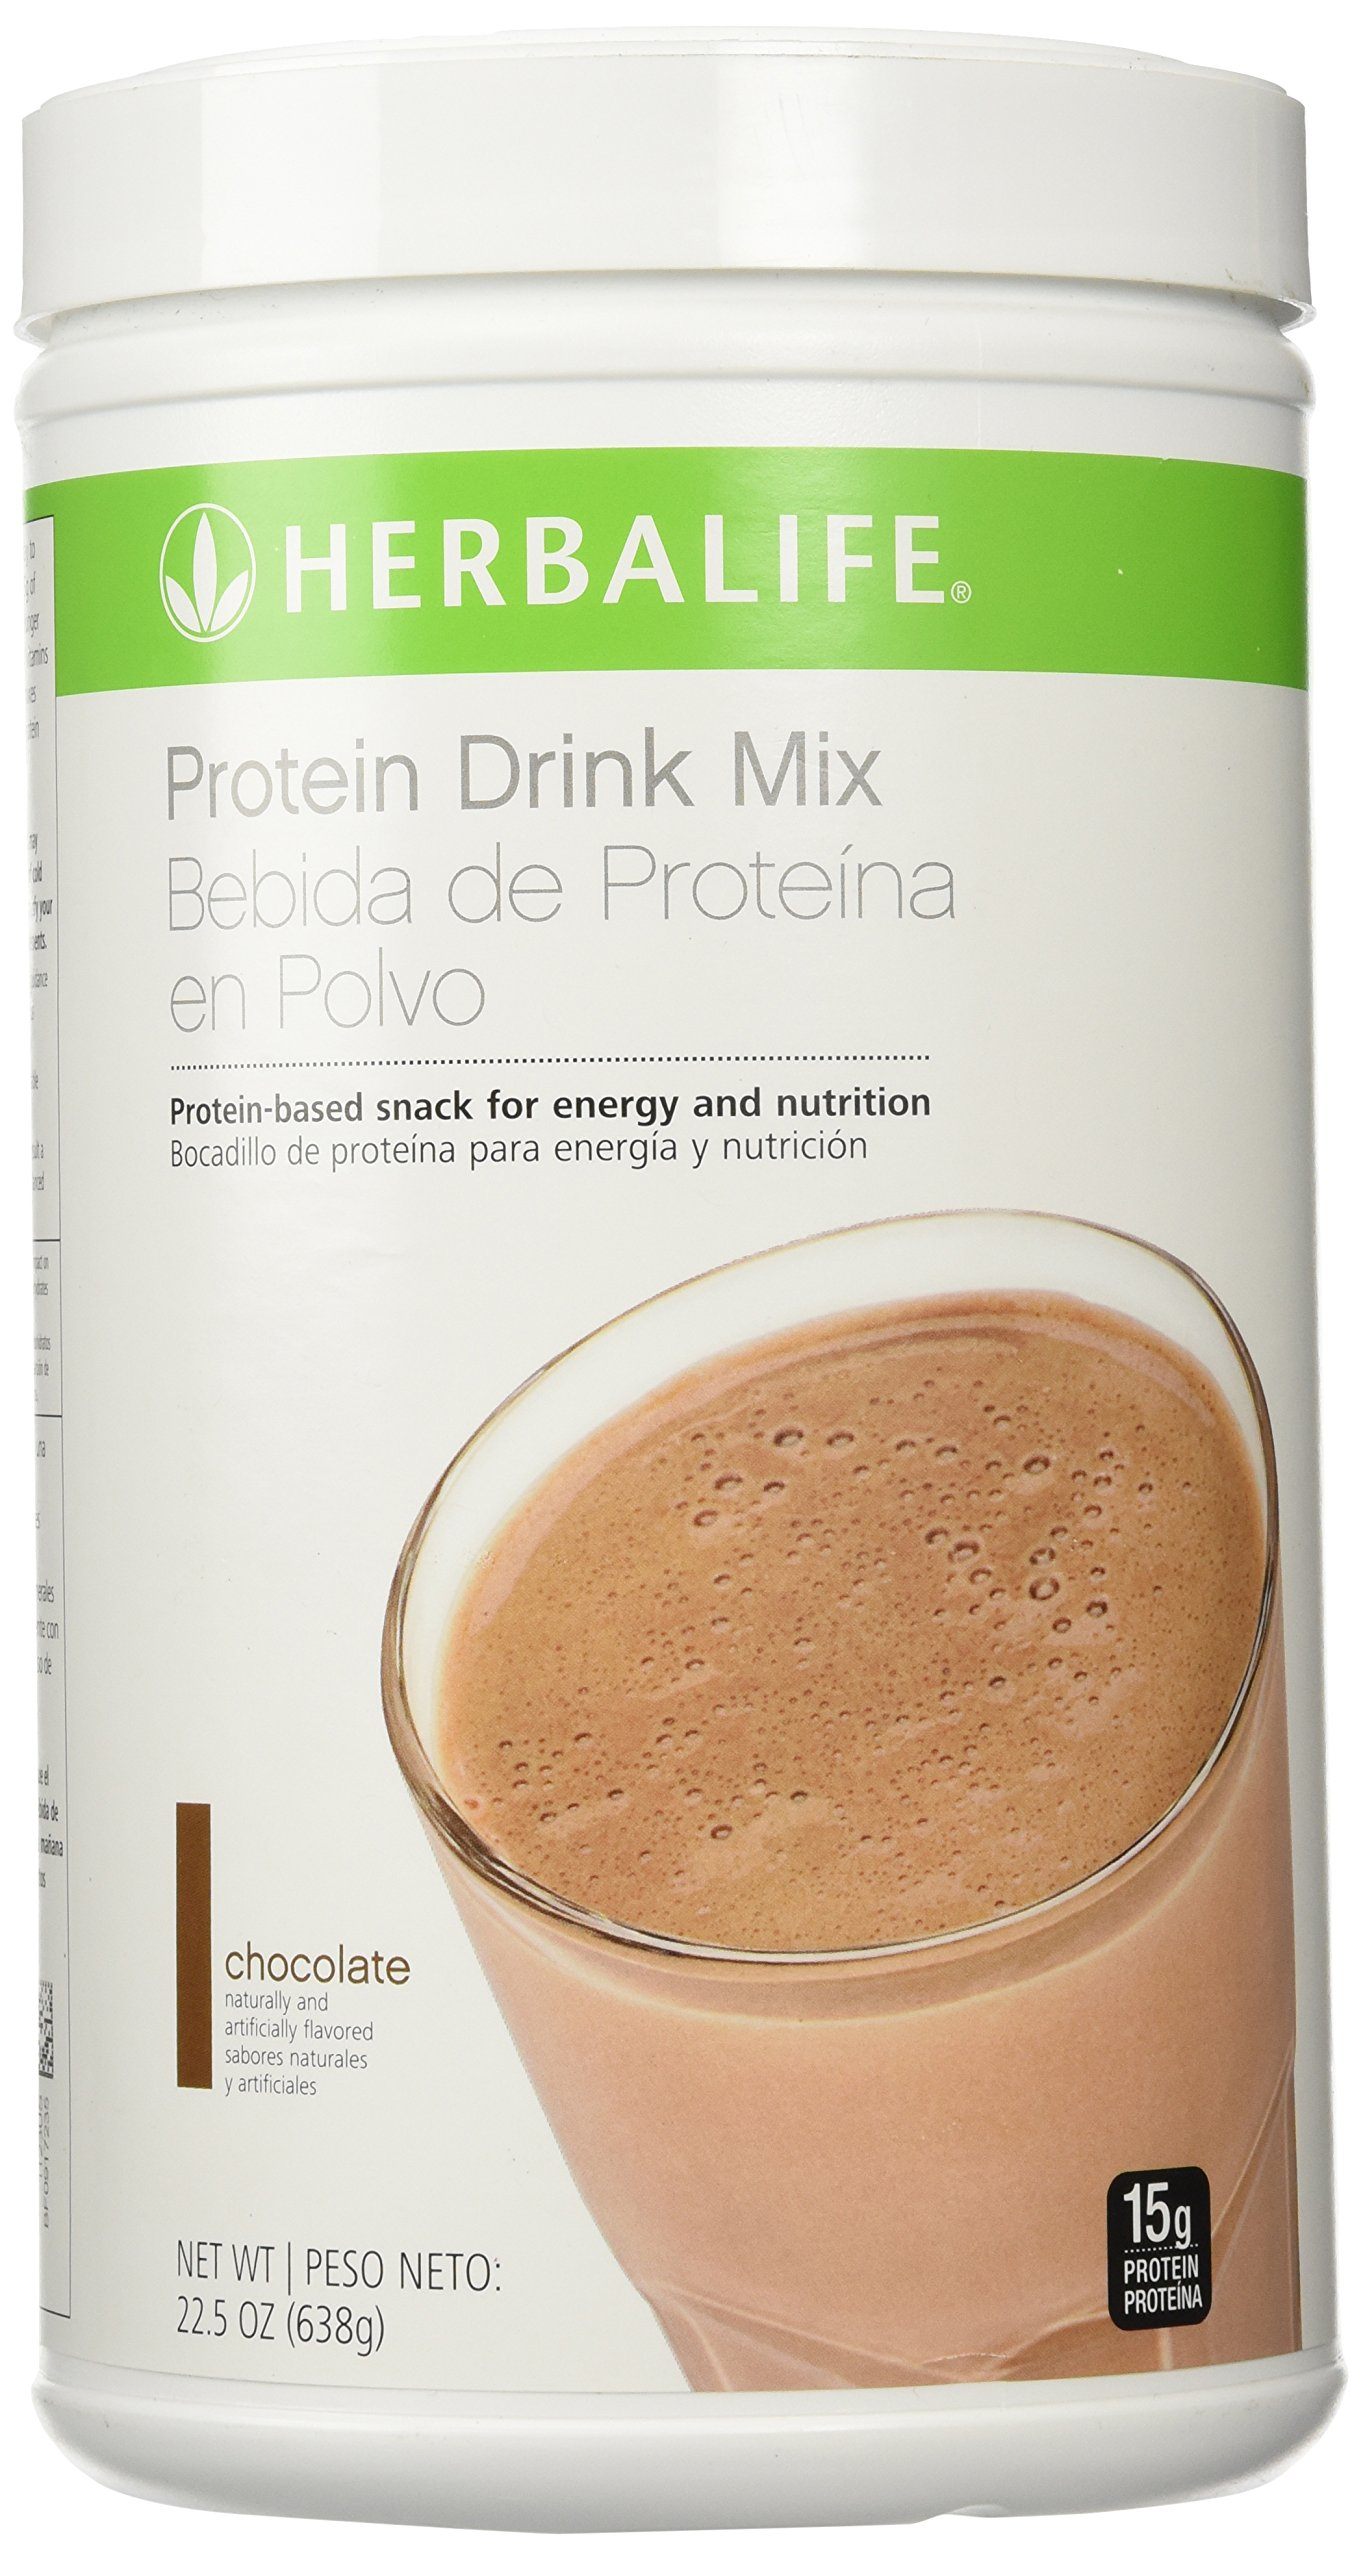 Herbalife Protein Drink Mix Chocolate 22.5oz Canister